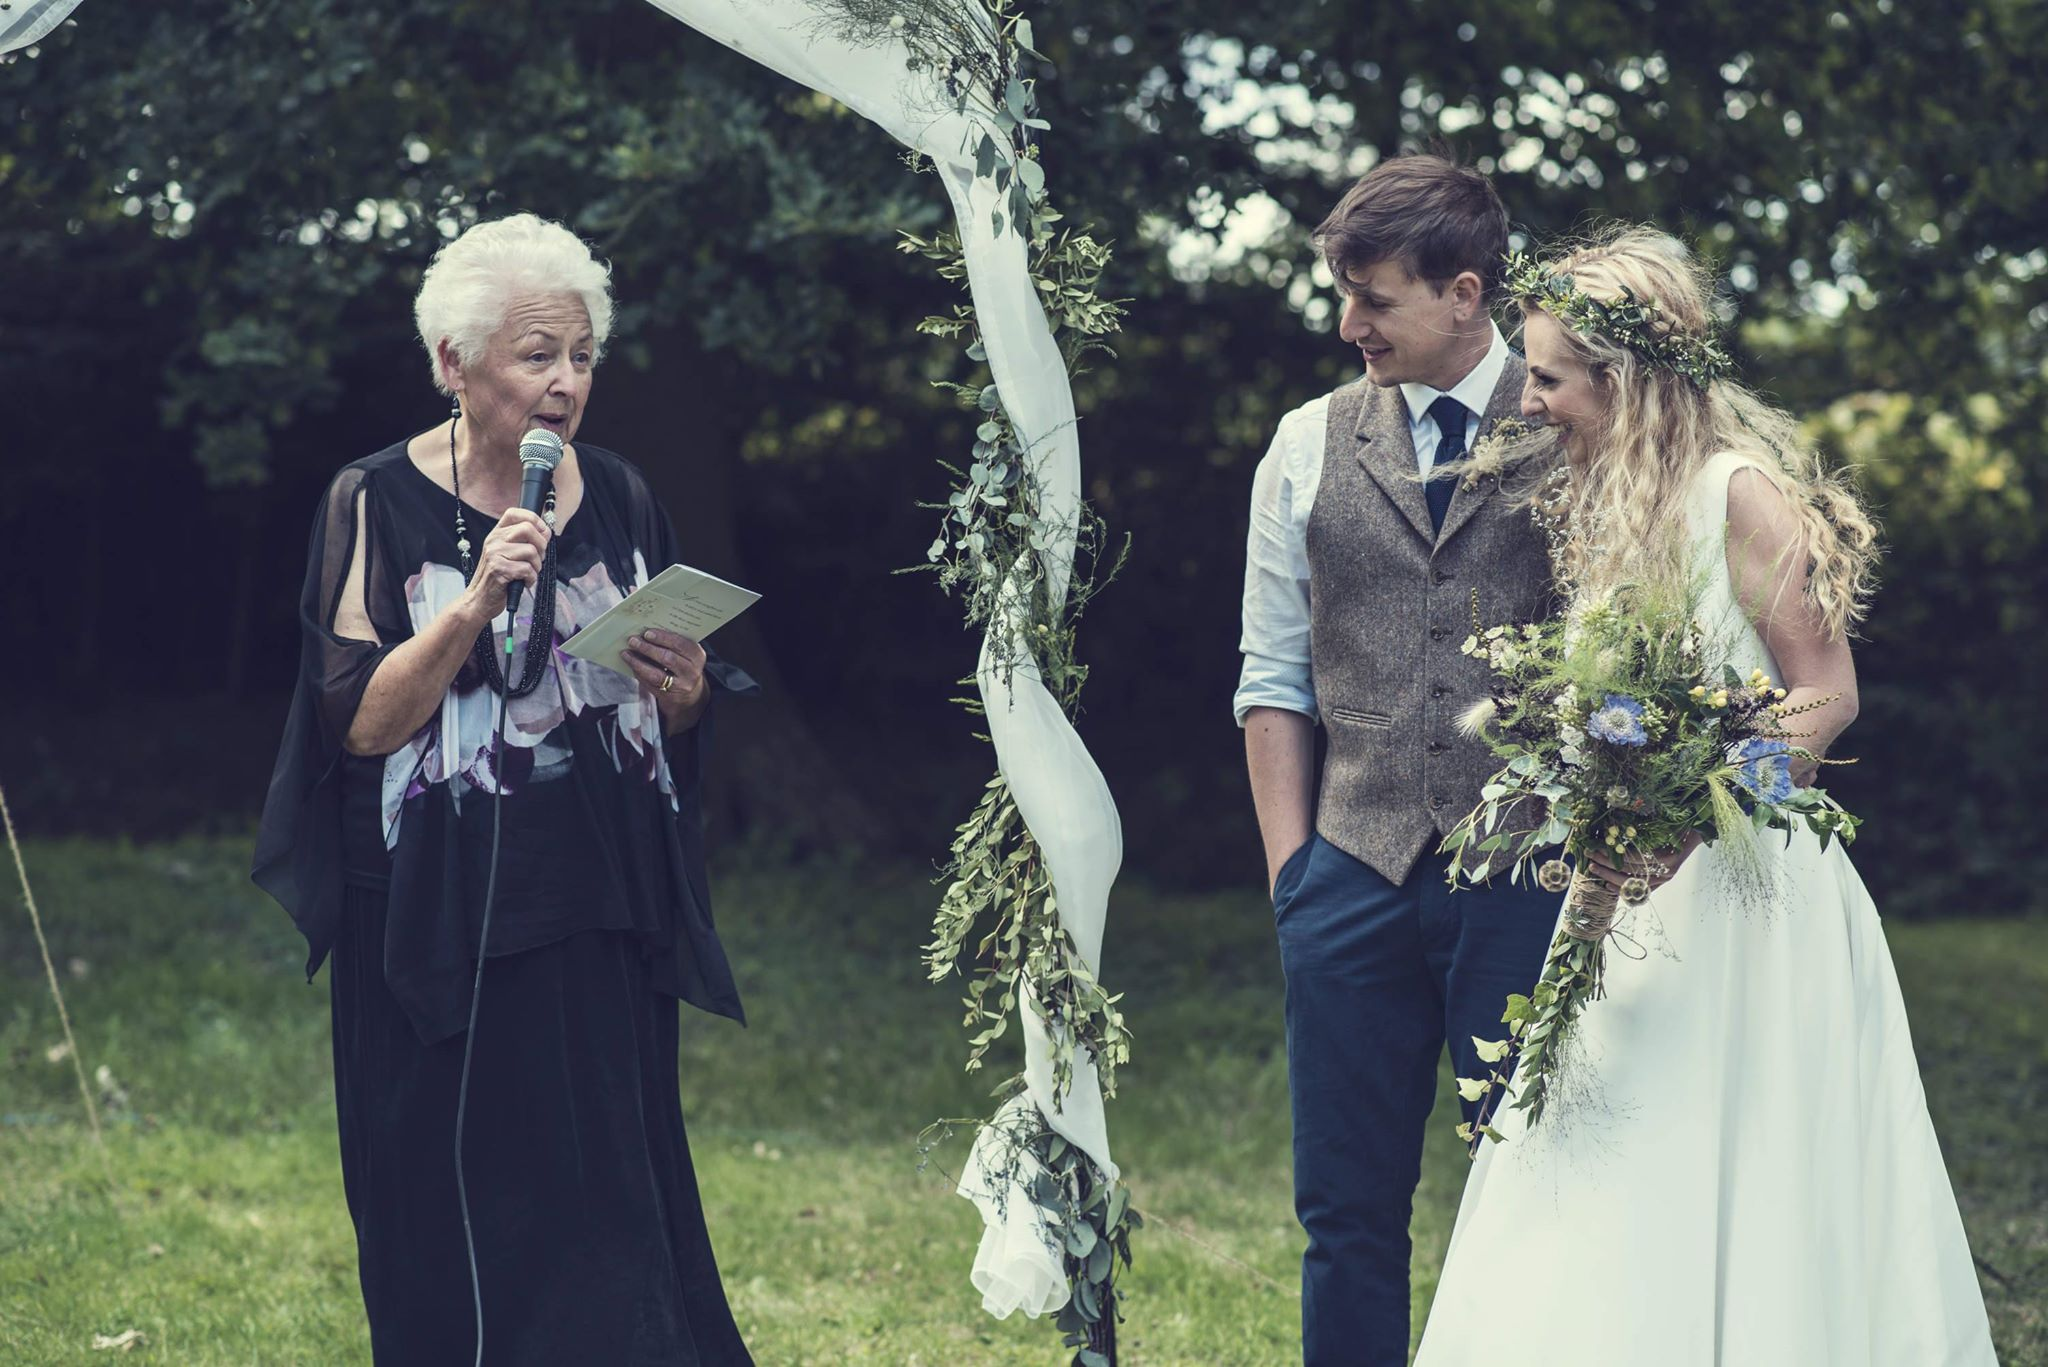 Guide to a celebrant wedding blog - thomas thomas photography 1 - outdoor wedding - outdoor ceremony